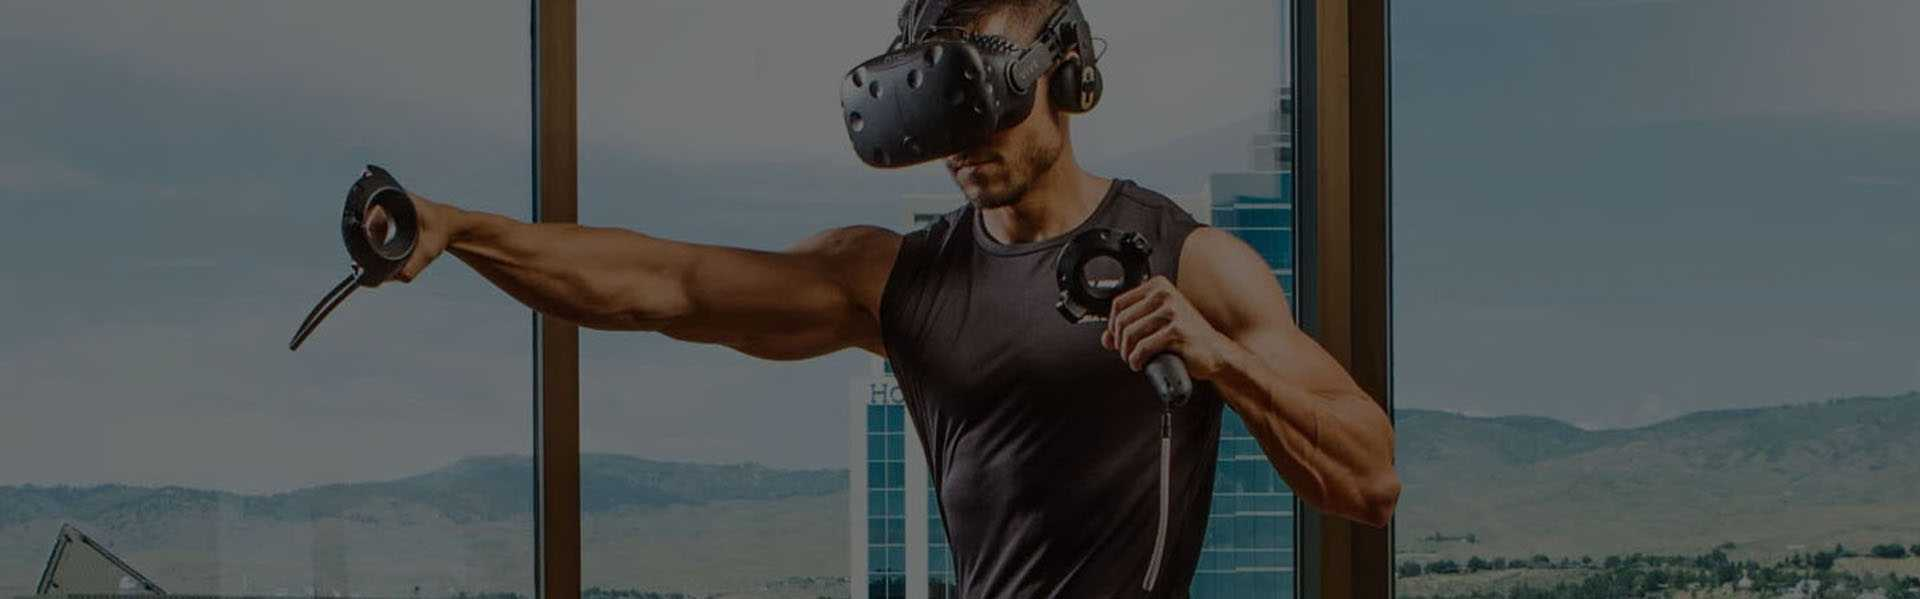 HOW TO USE VR FOR SPORTS: 7 LIFEHACKS